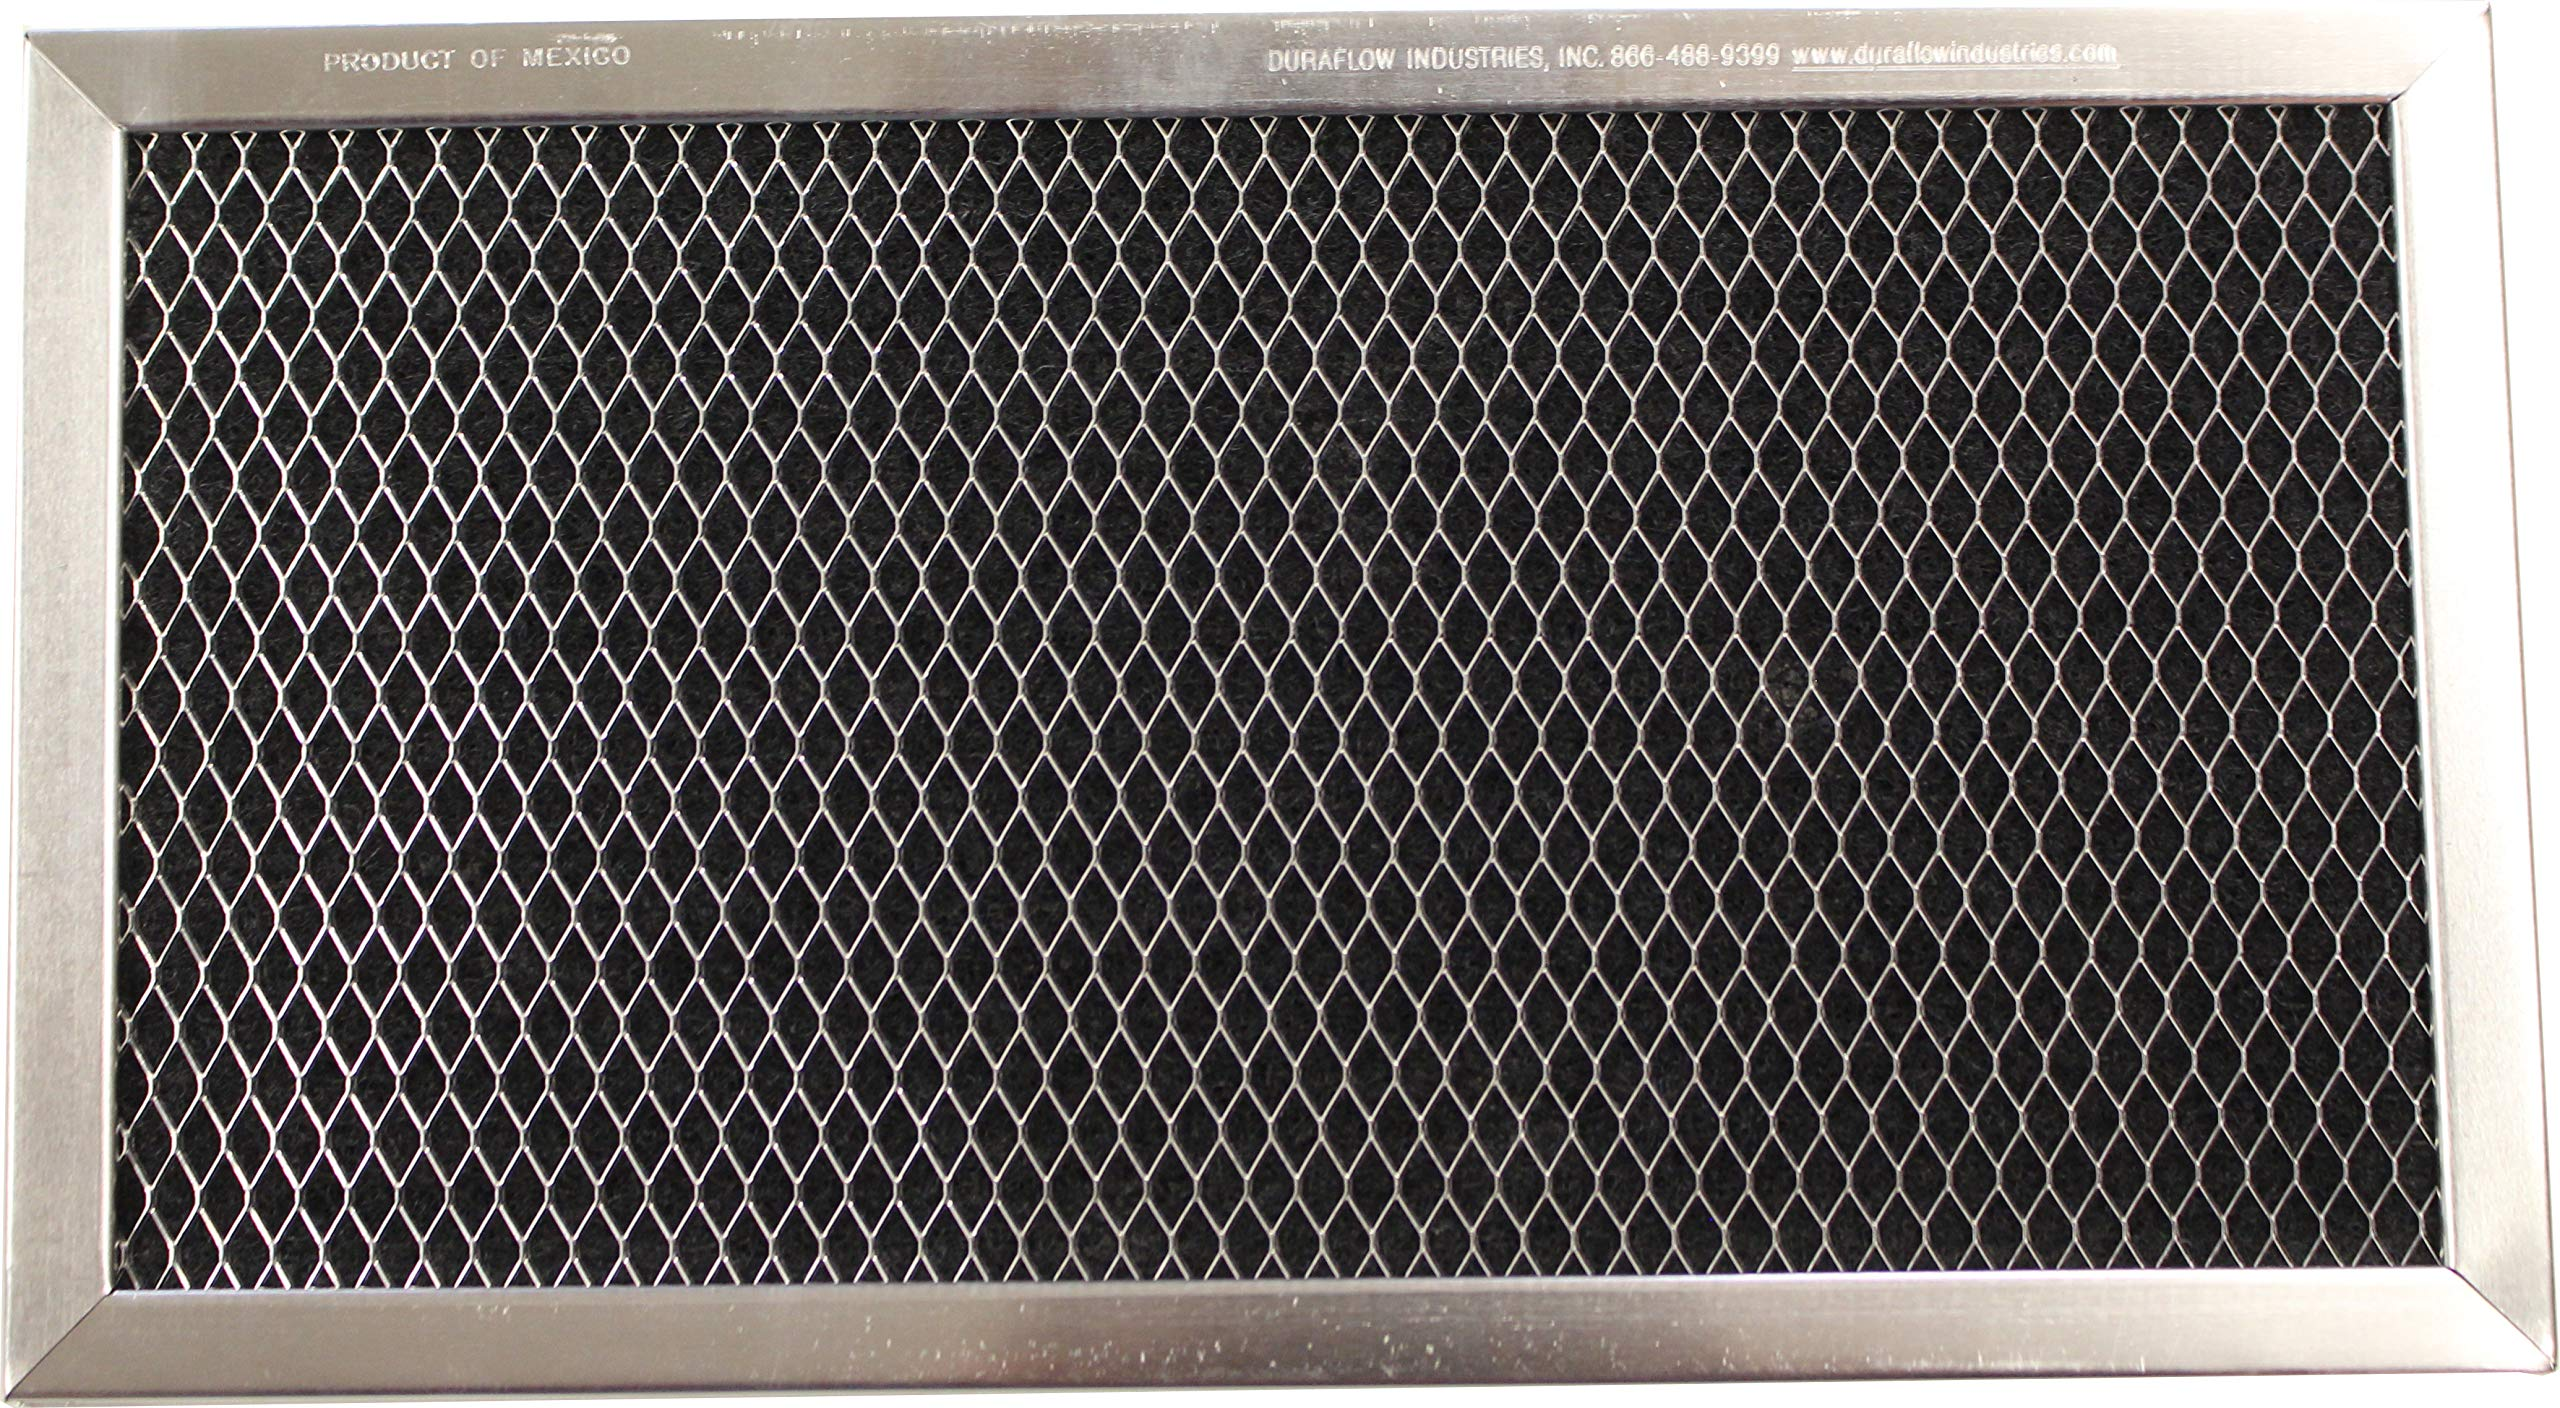 Carbon Range Filter Compatible With Amana W10120840, Broan 97005682, Broan 97008537, Hardwick W10120